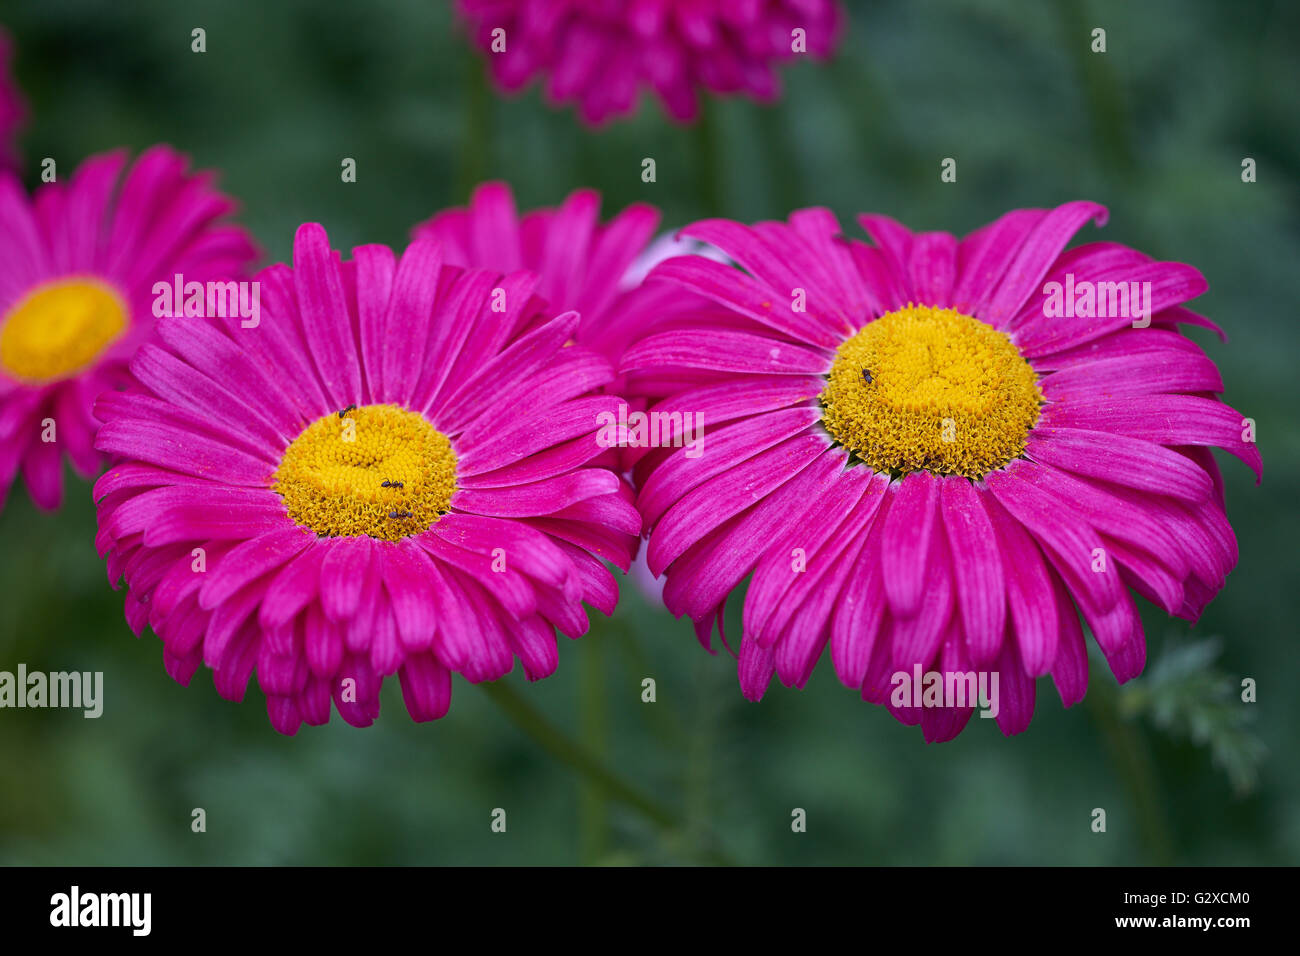 Two purple shapely pyrethrum flowers close up Tanacetum coccineum - Stock Image